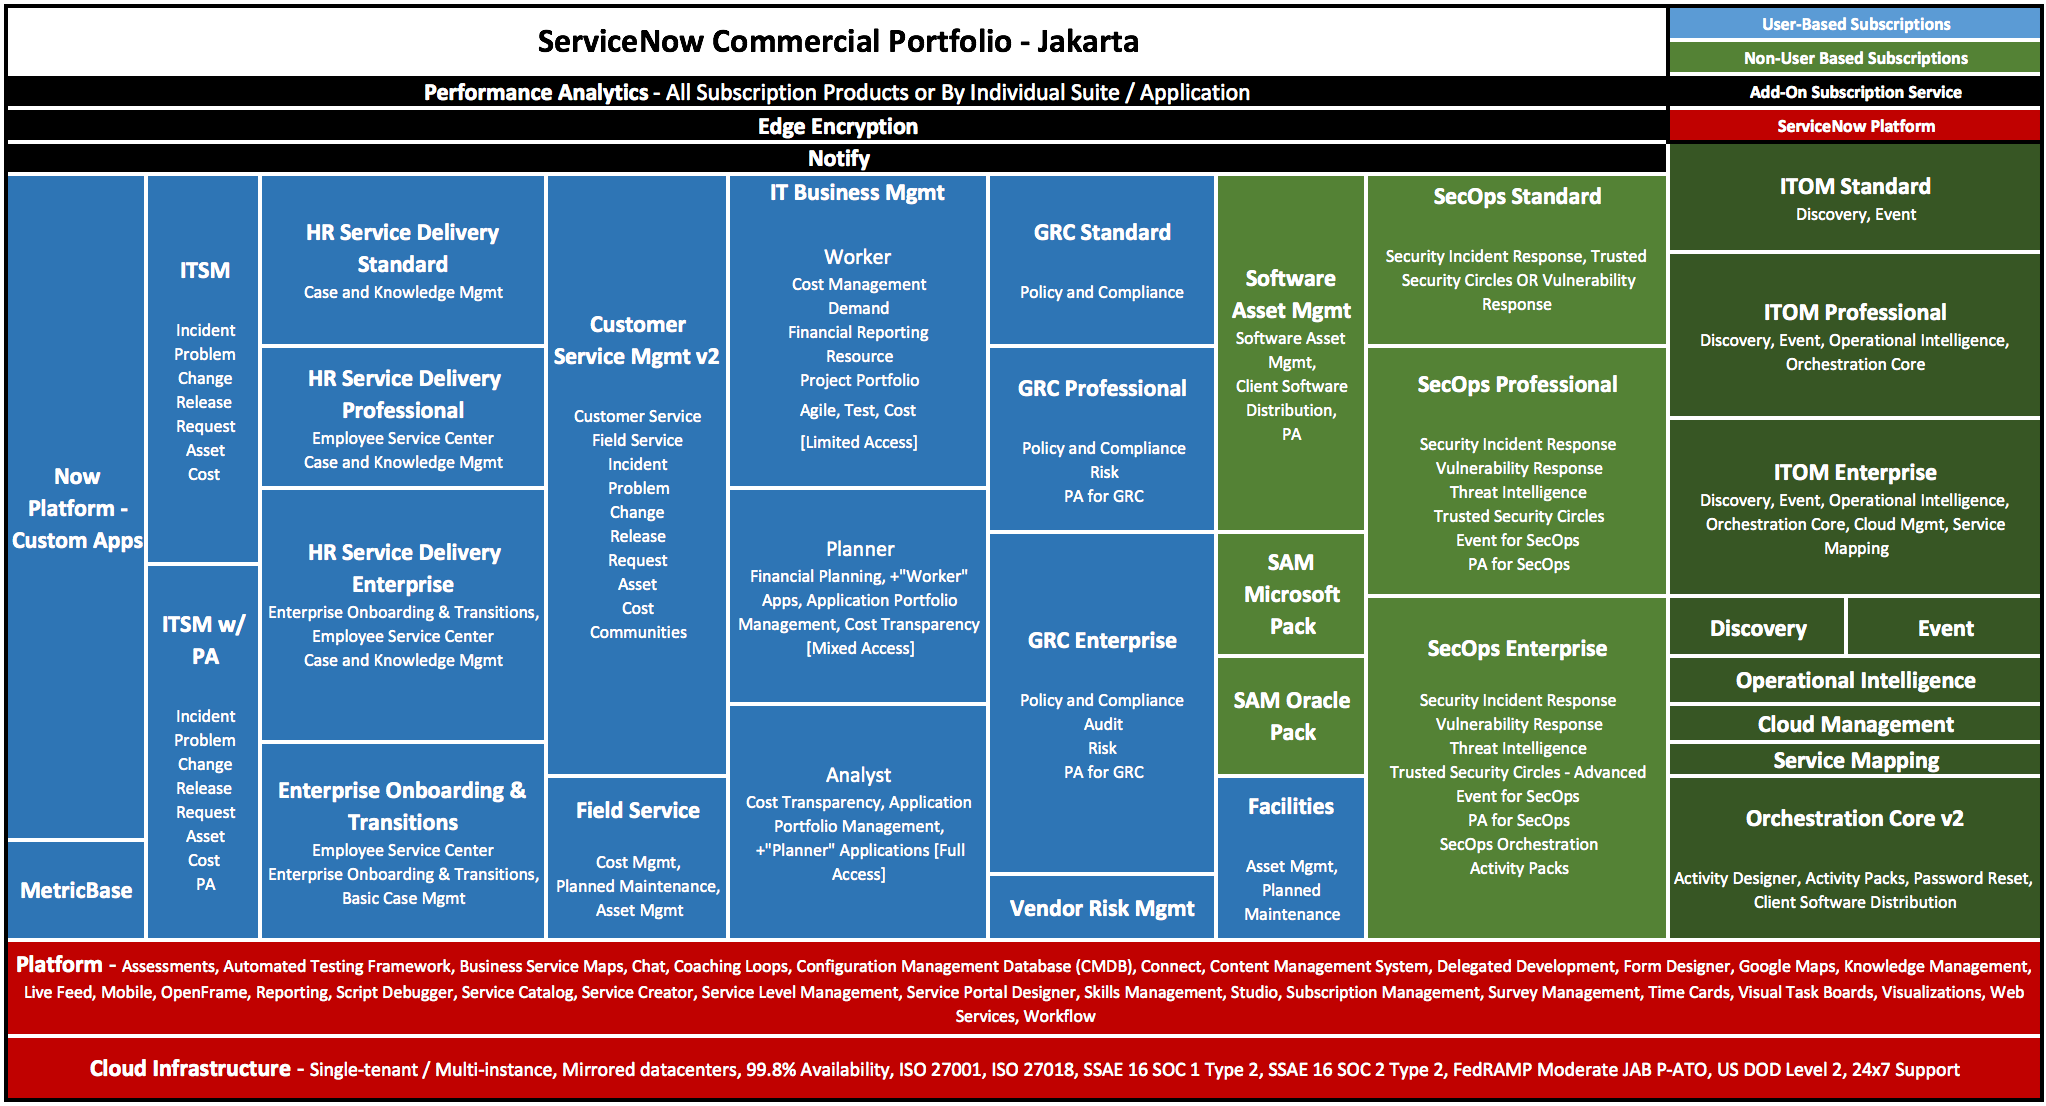 ServiceNow role based functionality